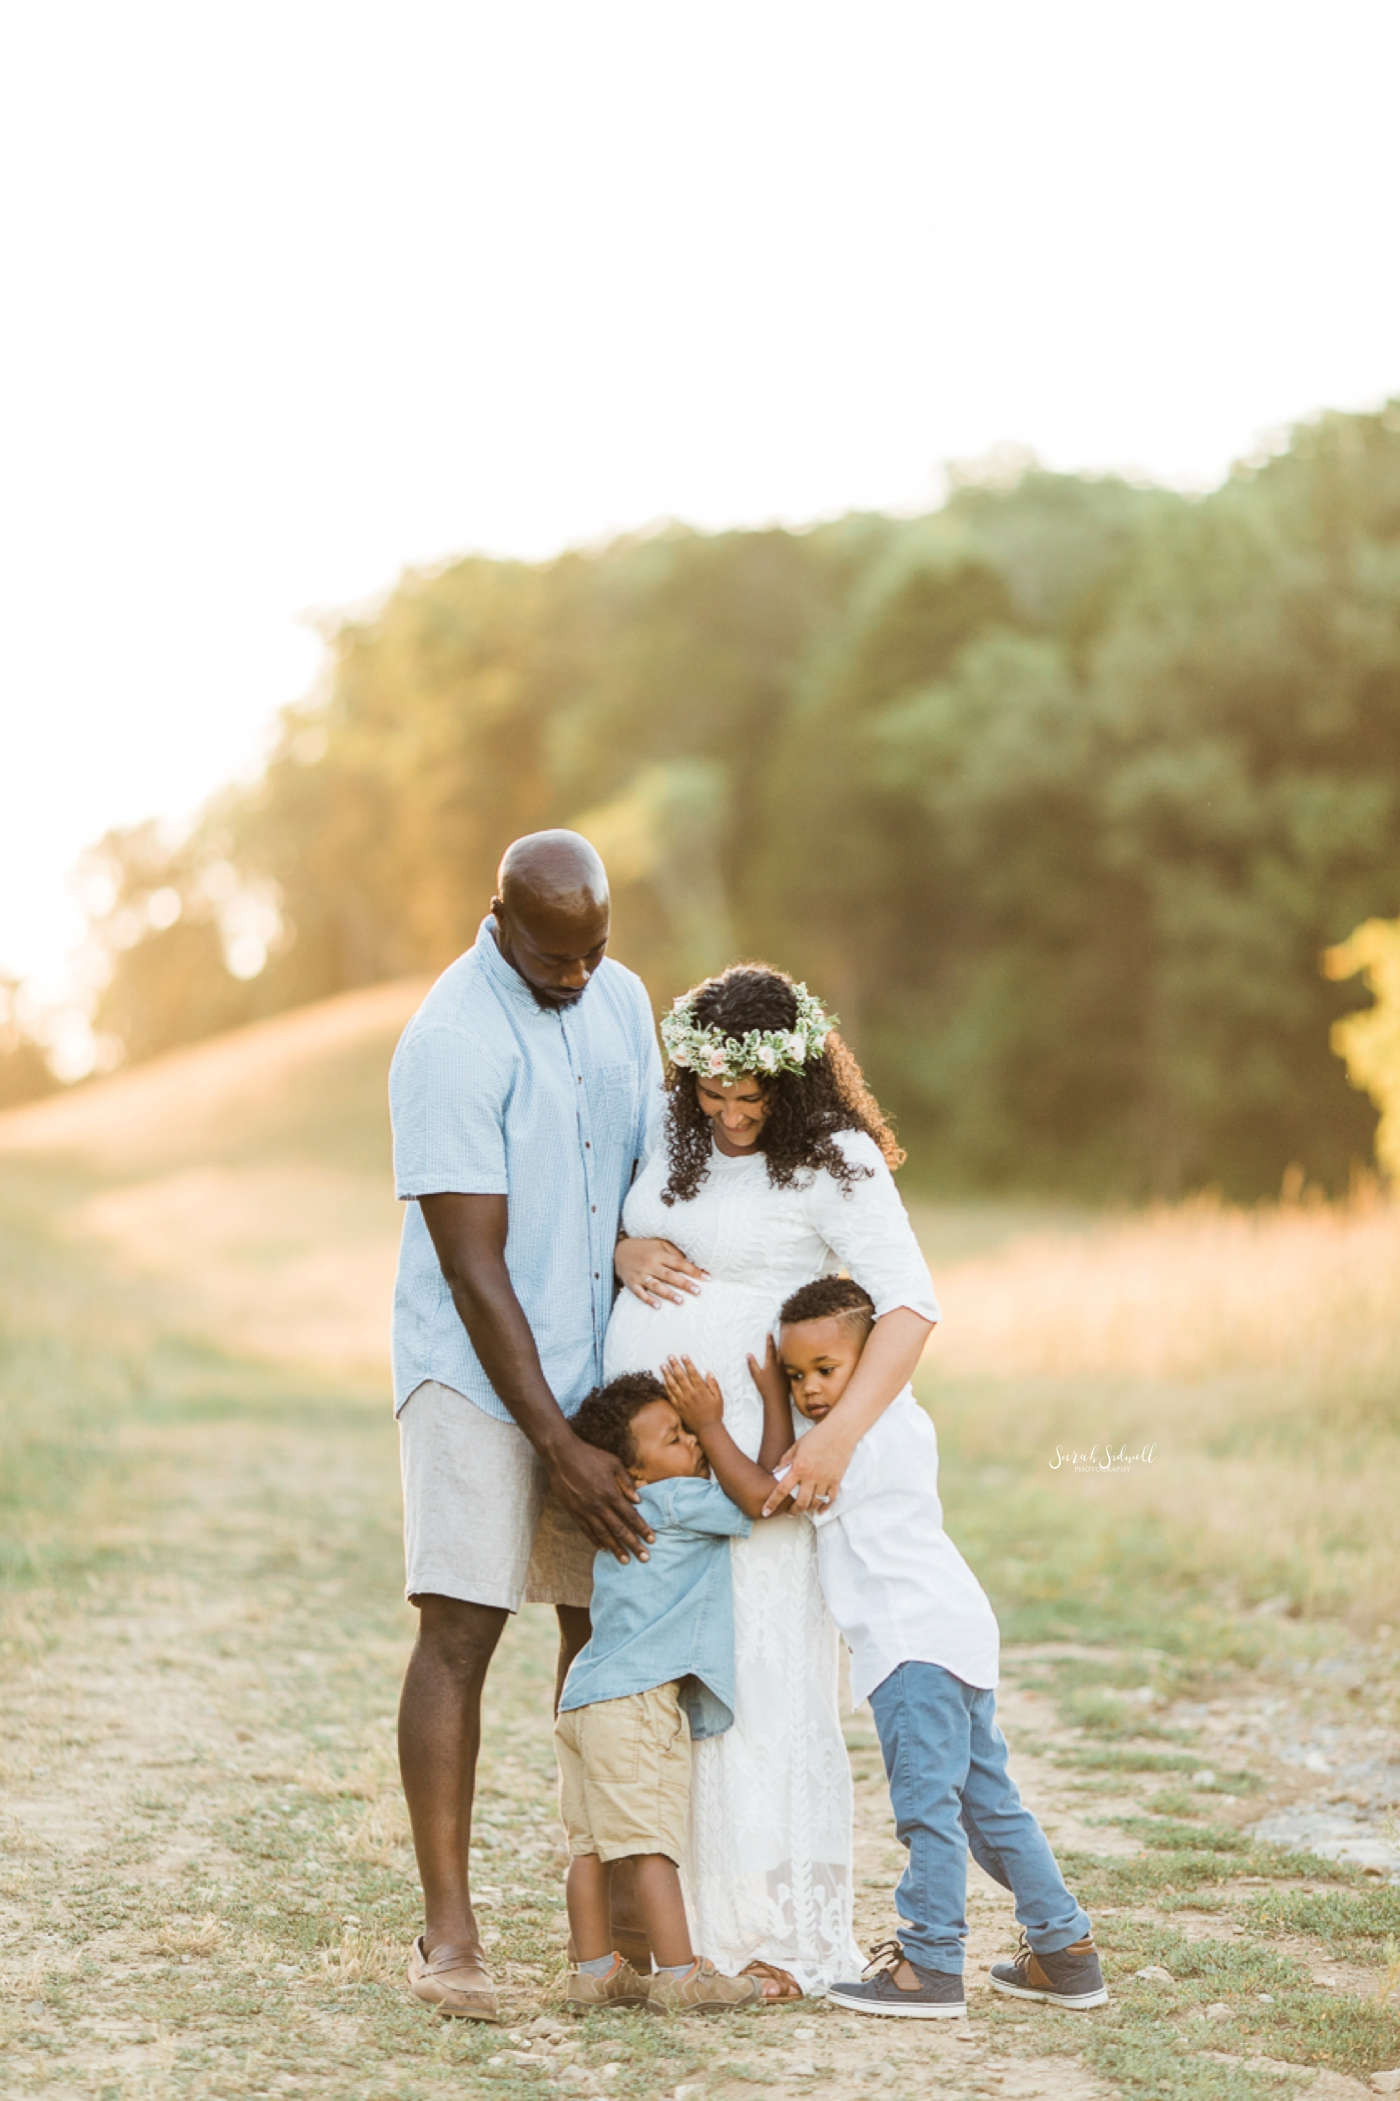 Two parents hug their sons during a family maternity session.